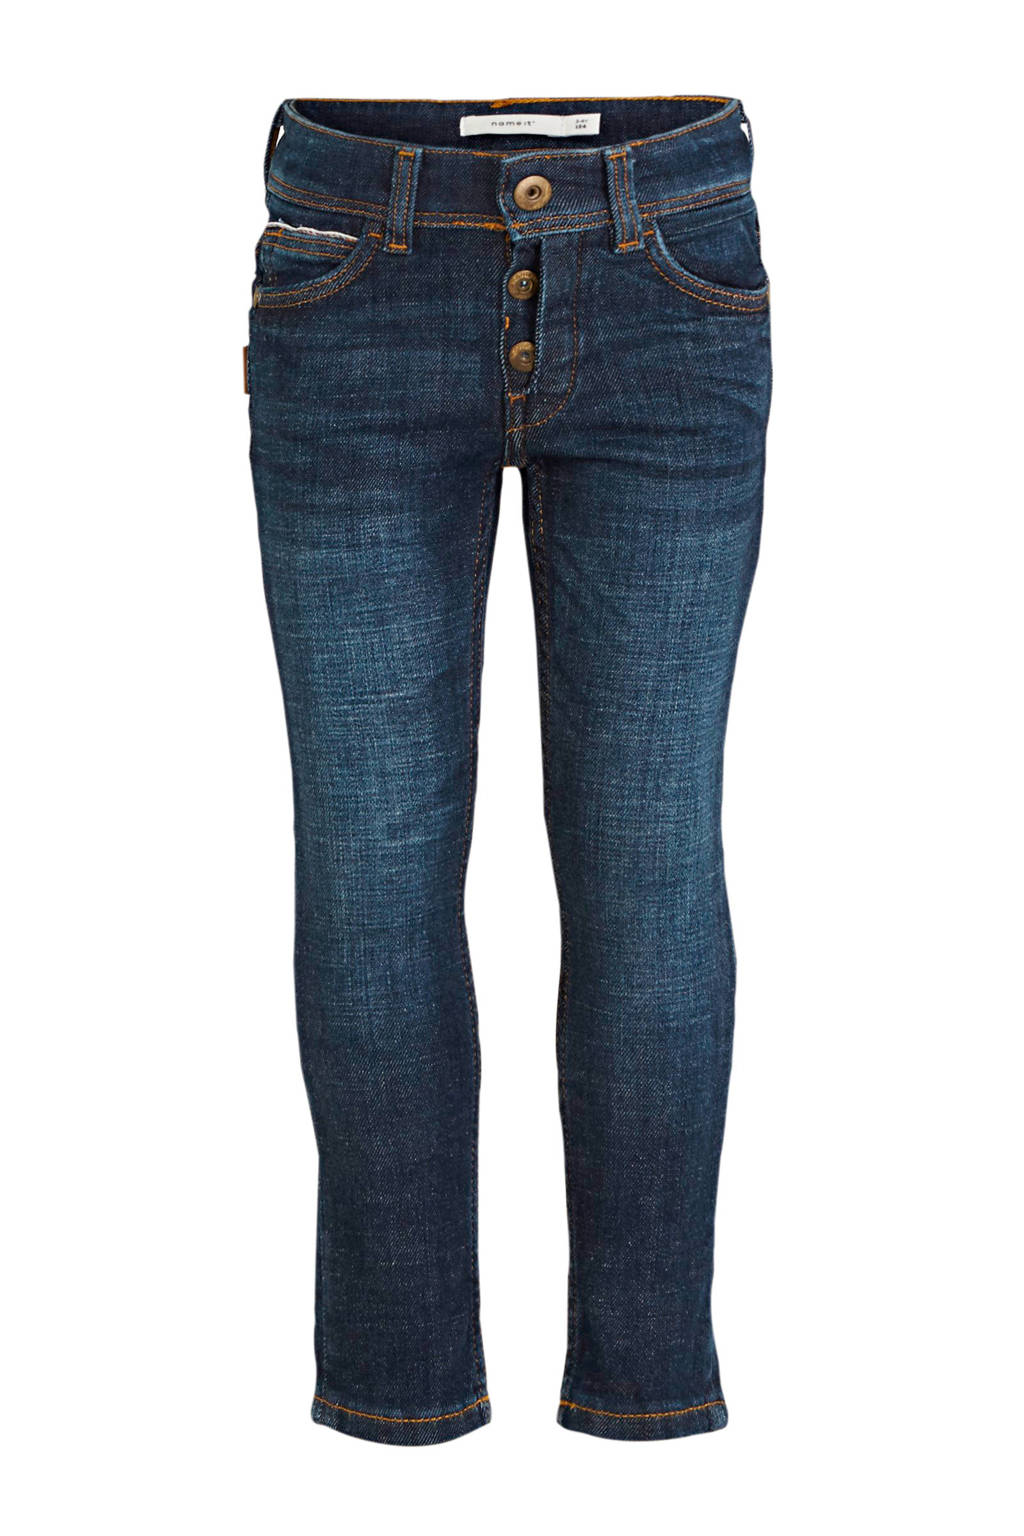 NAME IT MINI slim fit jeans dark denim, Dark denim